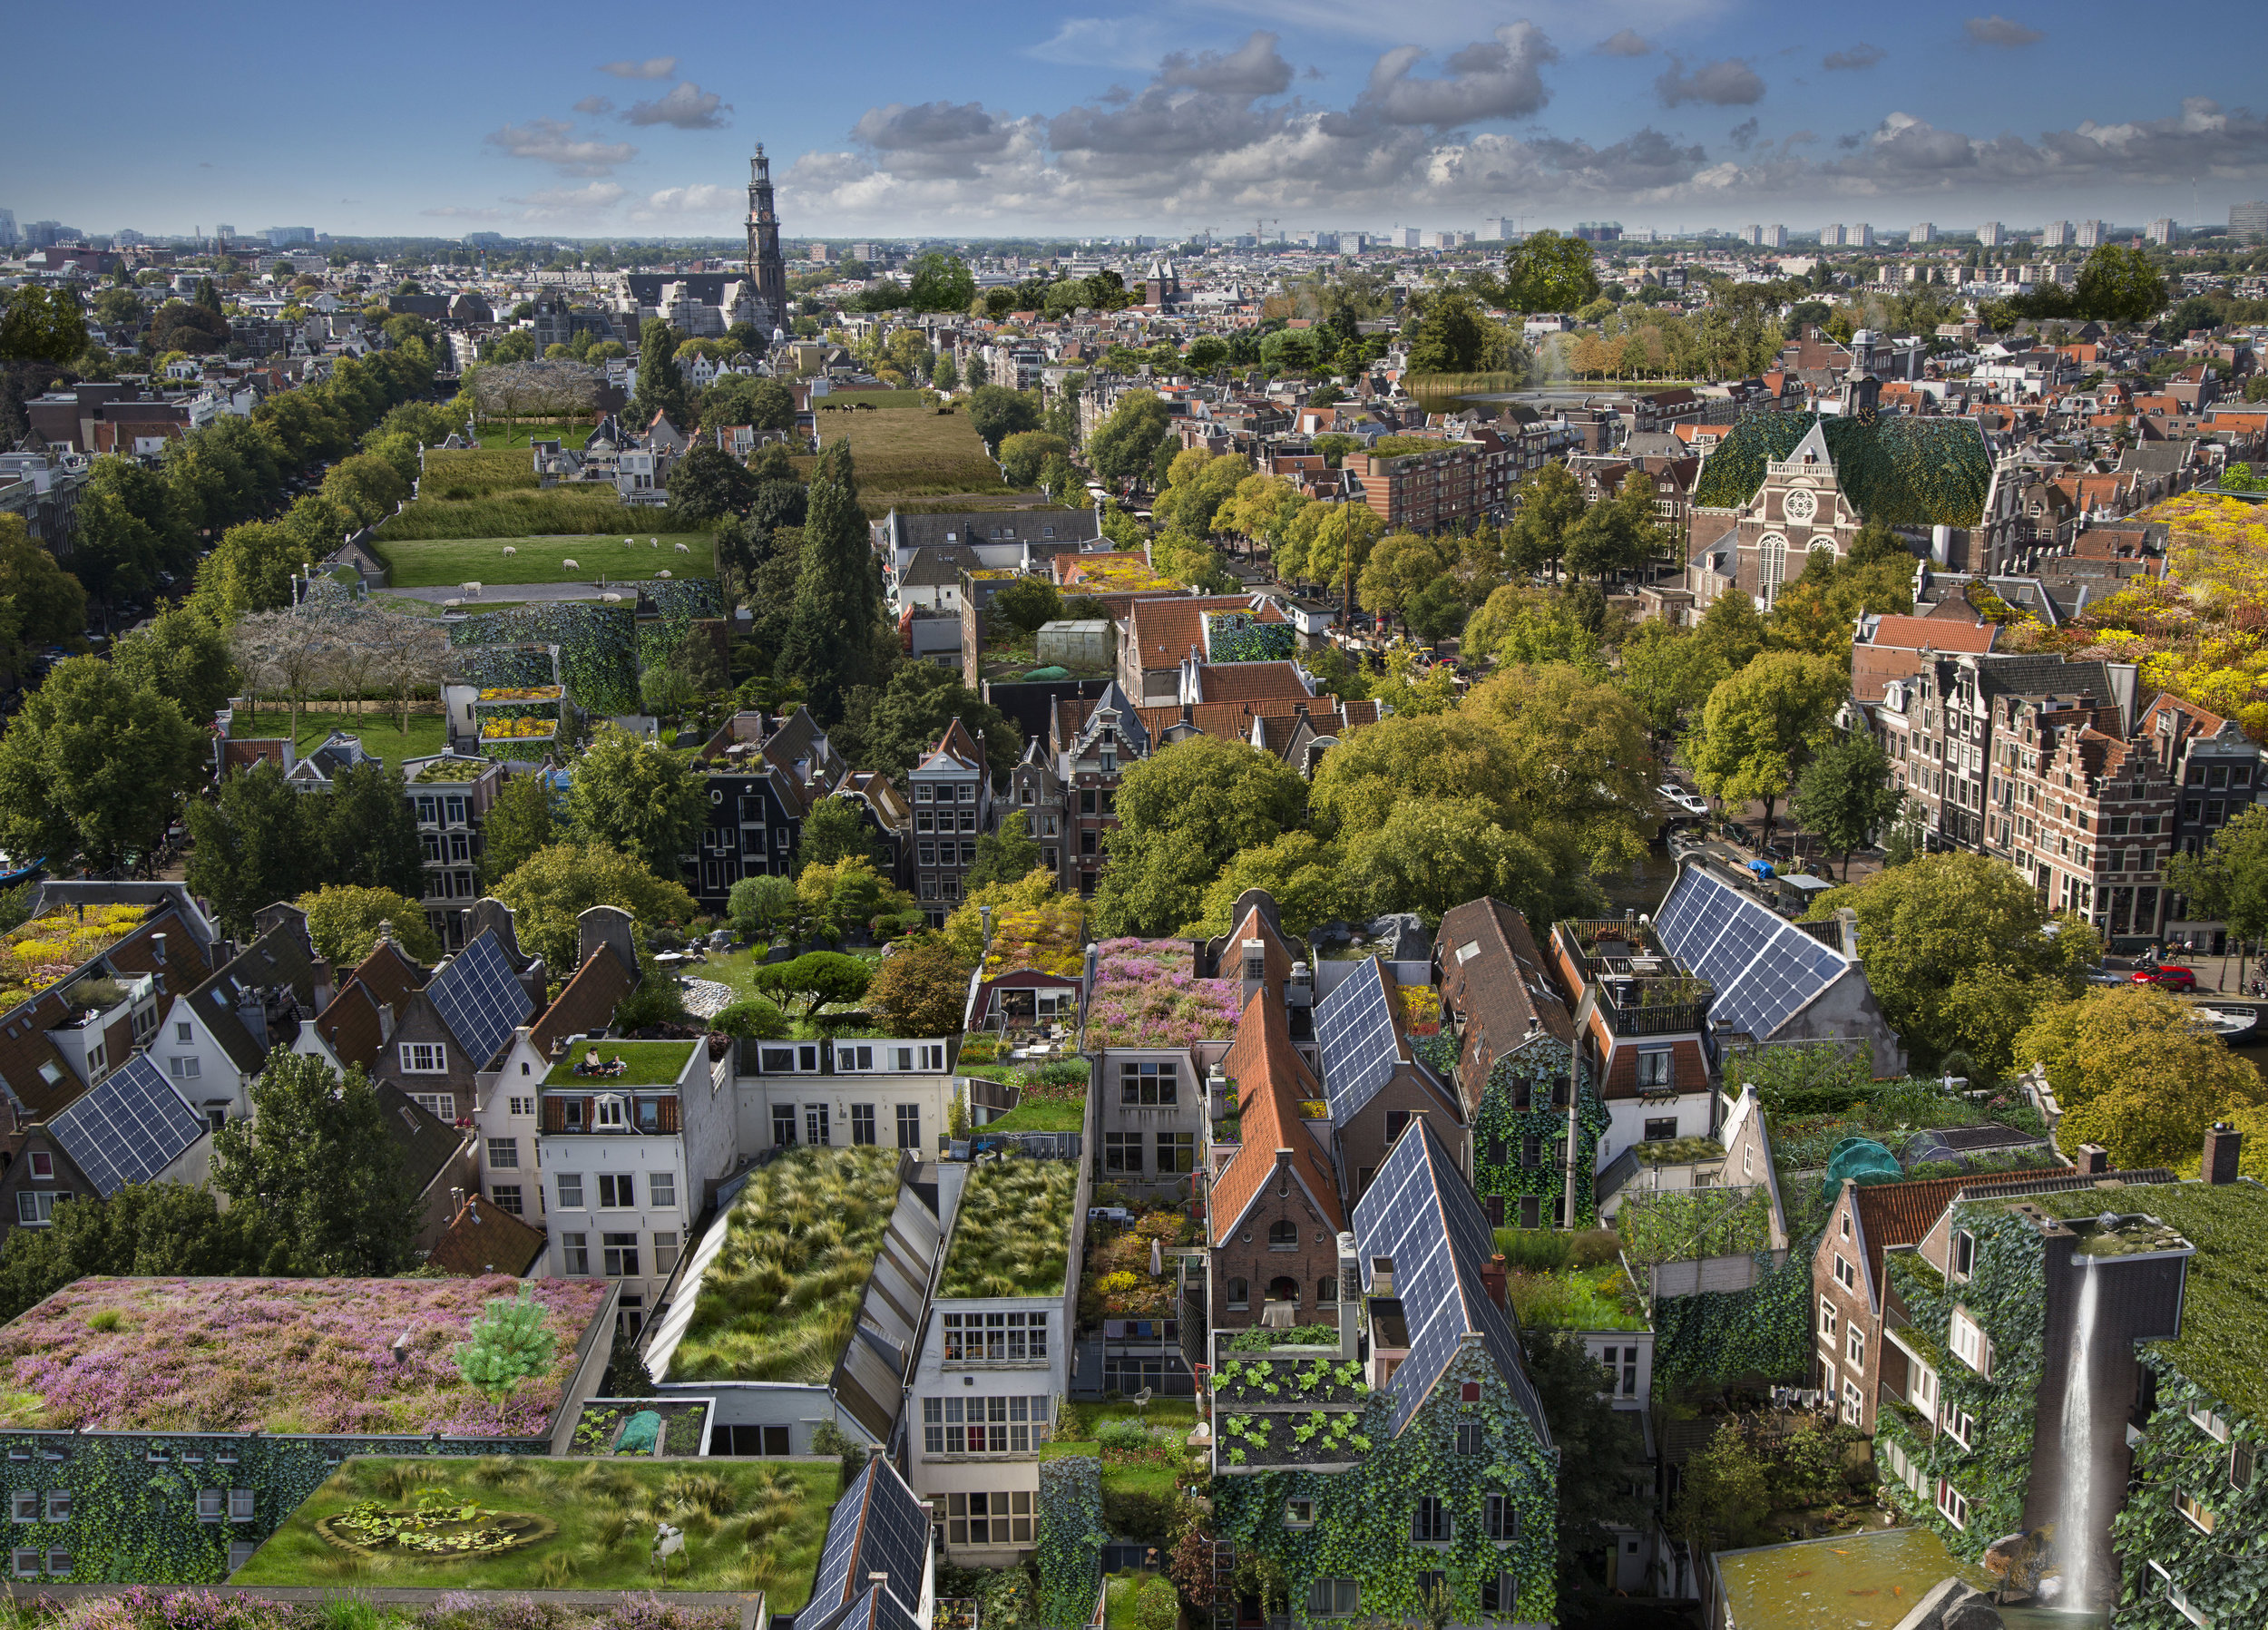 rooftop warriors | AMsterdam - 13.000 km² of roof is undergoing a Rooftop Revolution in the Dutch capital. An interview about the green roofs of the future.by Daan van Kooten